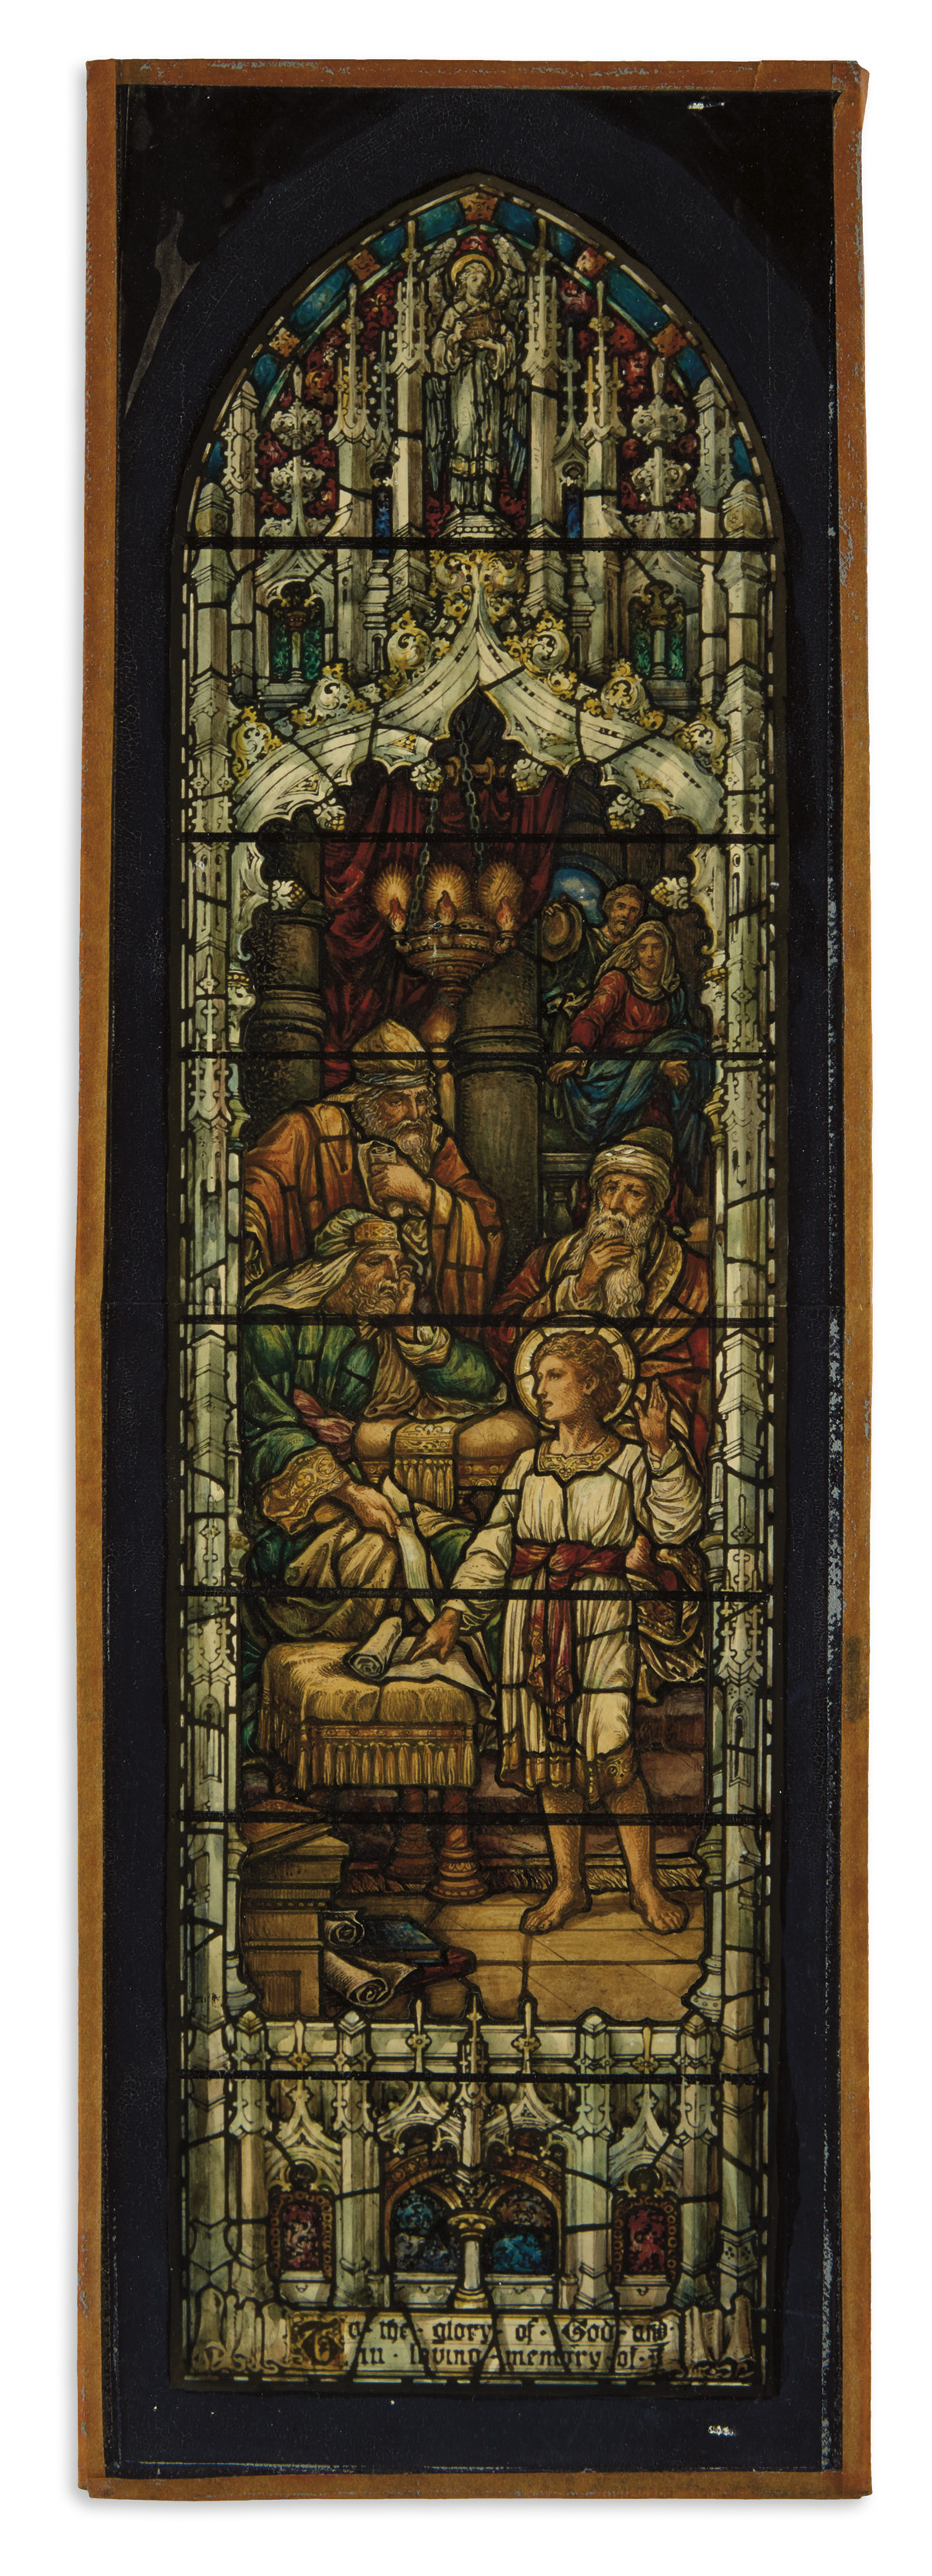 (STAINED-GLASS)-FG-Wiedemann-Stained-Glass-Studio-Model-for-